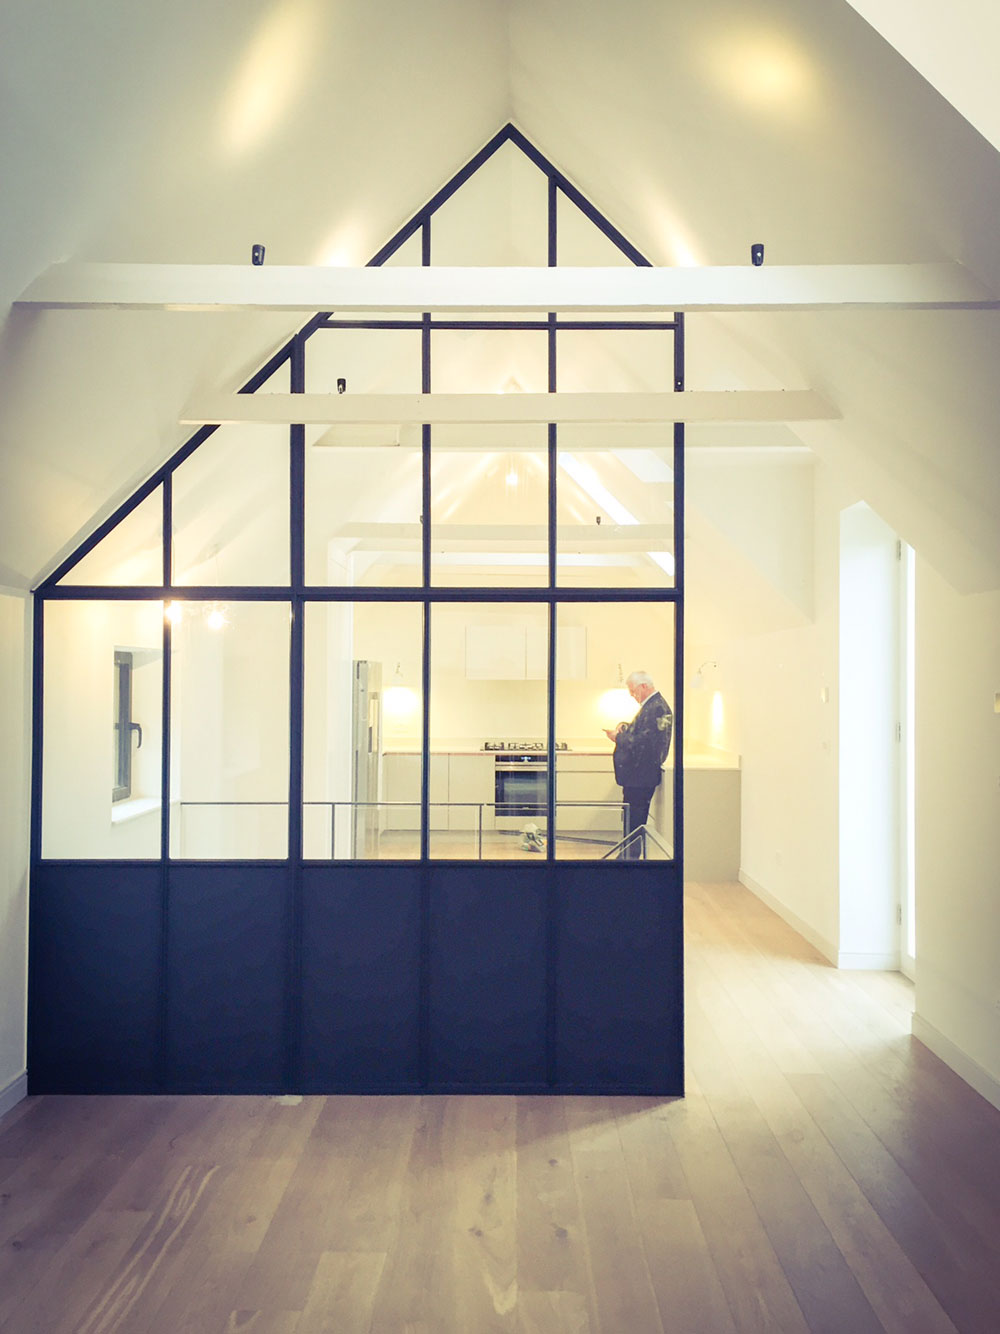 bp_lodge_crittall.jpg